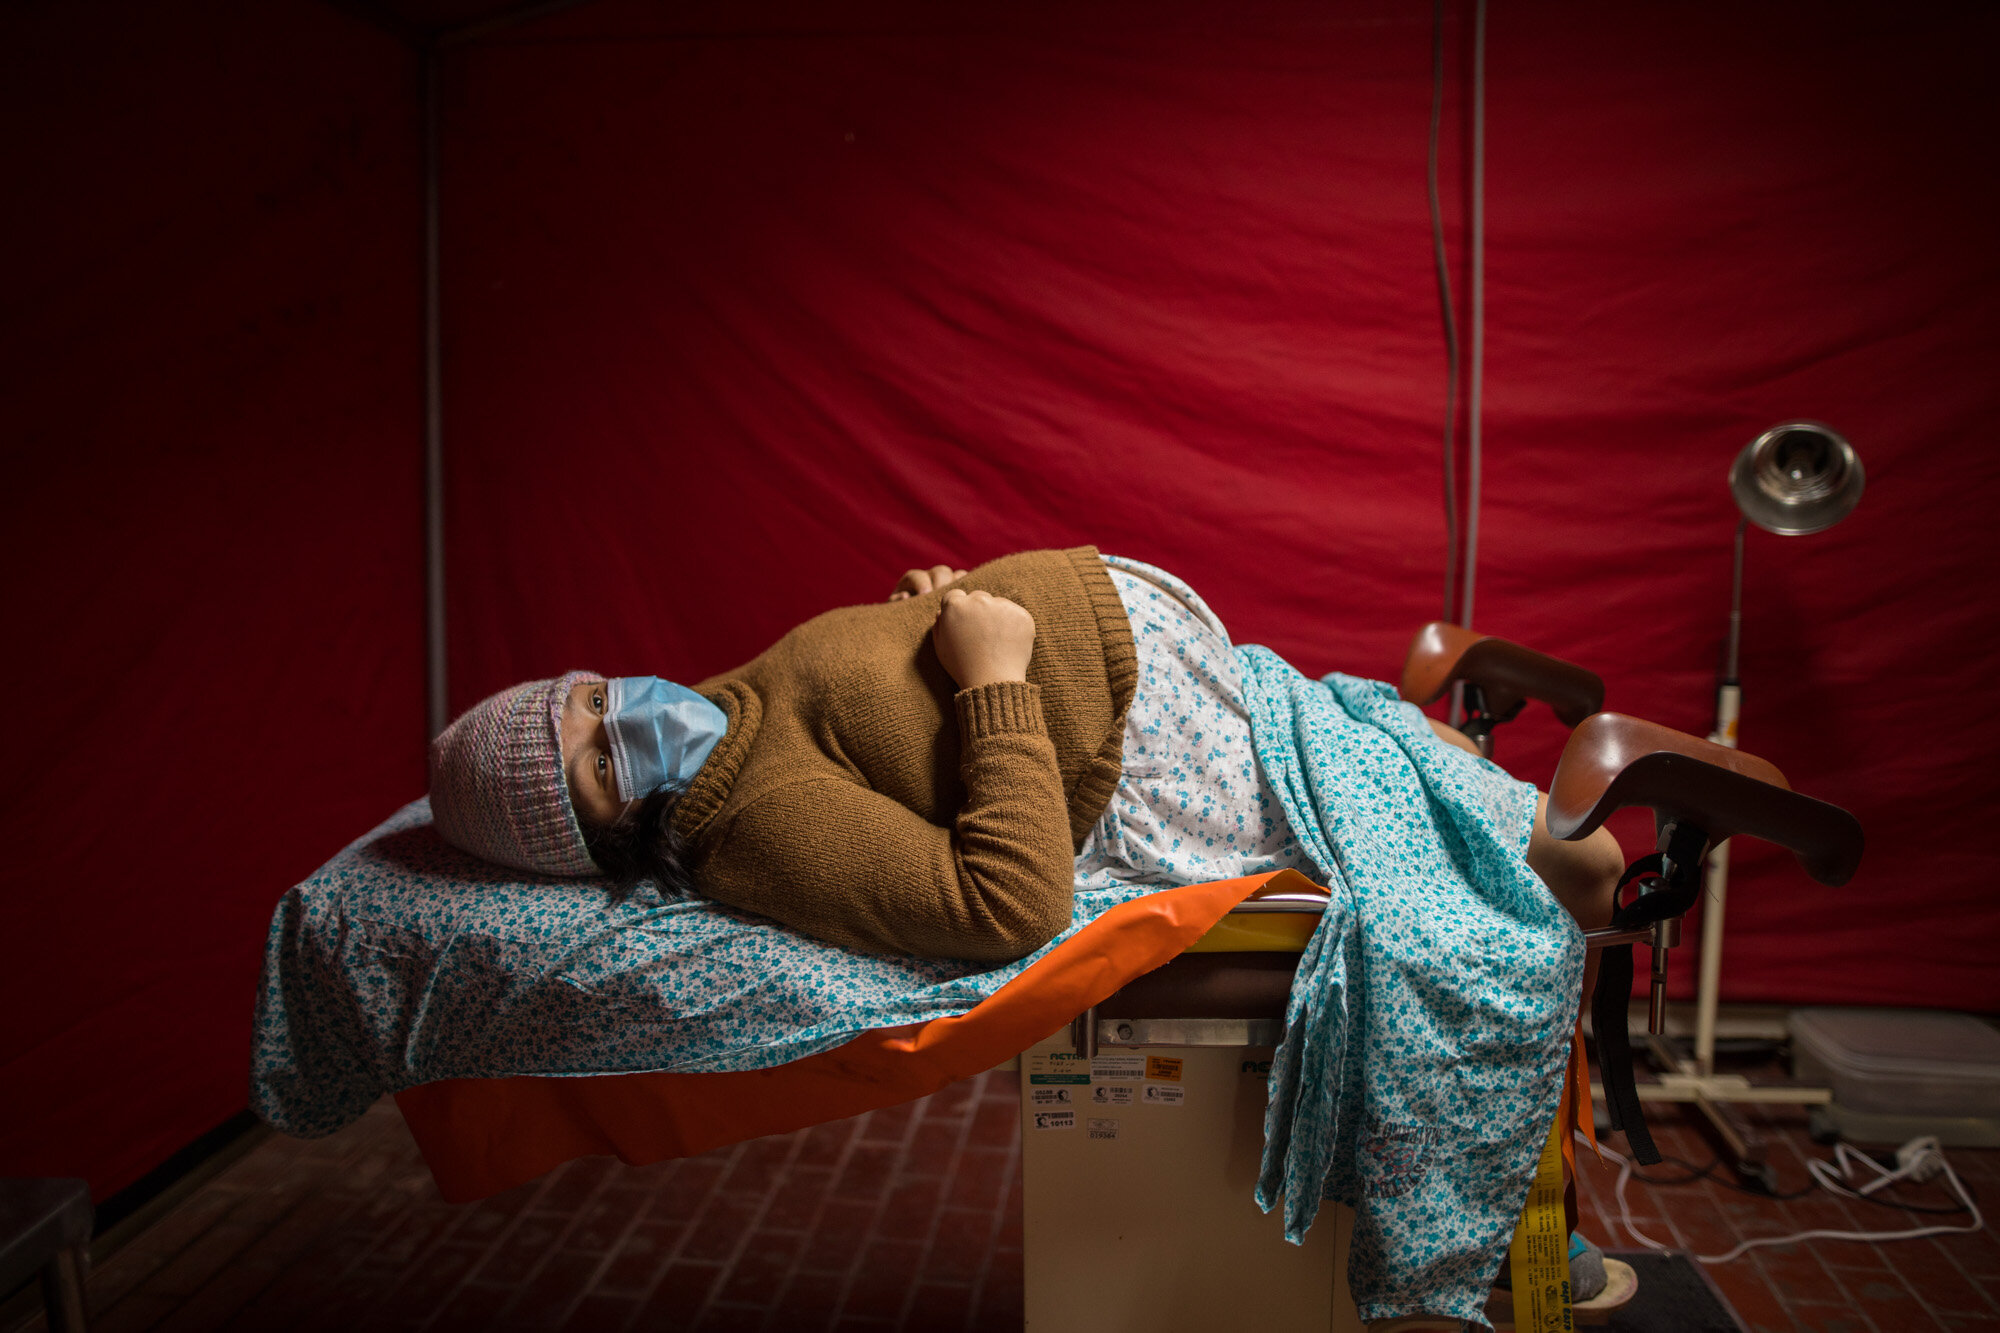 Olinda Tafur, 20, lies on an examination table as she waits to be seen by an obstetrician inside a tent set up in the emergency area of the National Perinatal and Maternal Institute to receive women in labor who are infected with COVID-19, in Lima, Peru, on July 29, 2020. Just before giving birth to her first child, Tafur learned that she had tested positive for the new coronavirus upon arriving with labor pains to the emergency area of the Institute. (AP Photo/Rodrigo Abd)